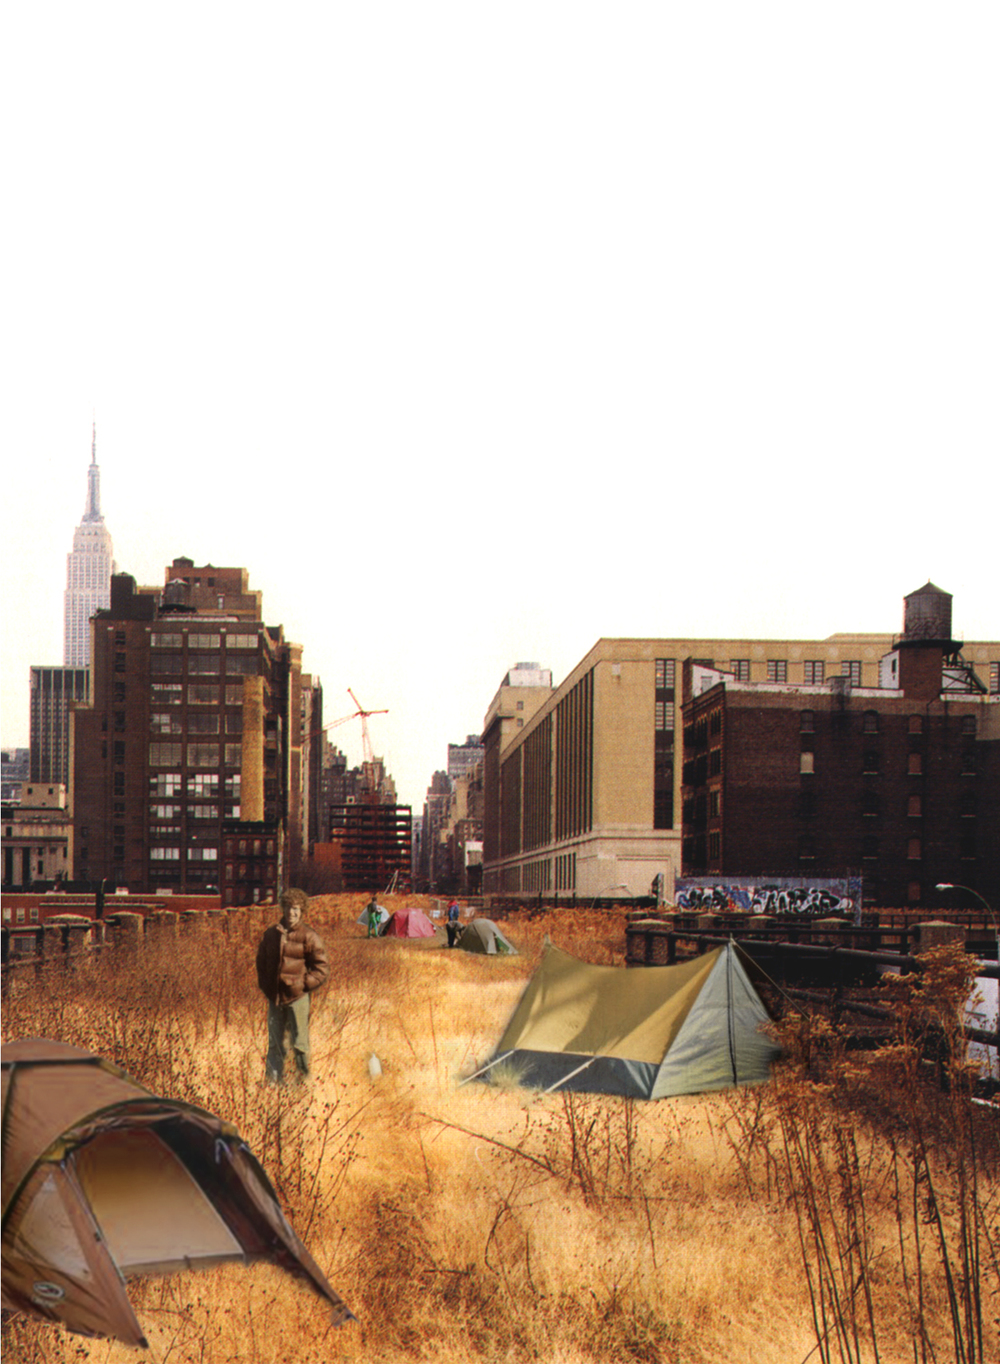 05_HighLine_CAMP-TENT.jpg